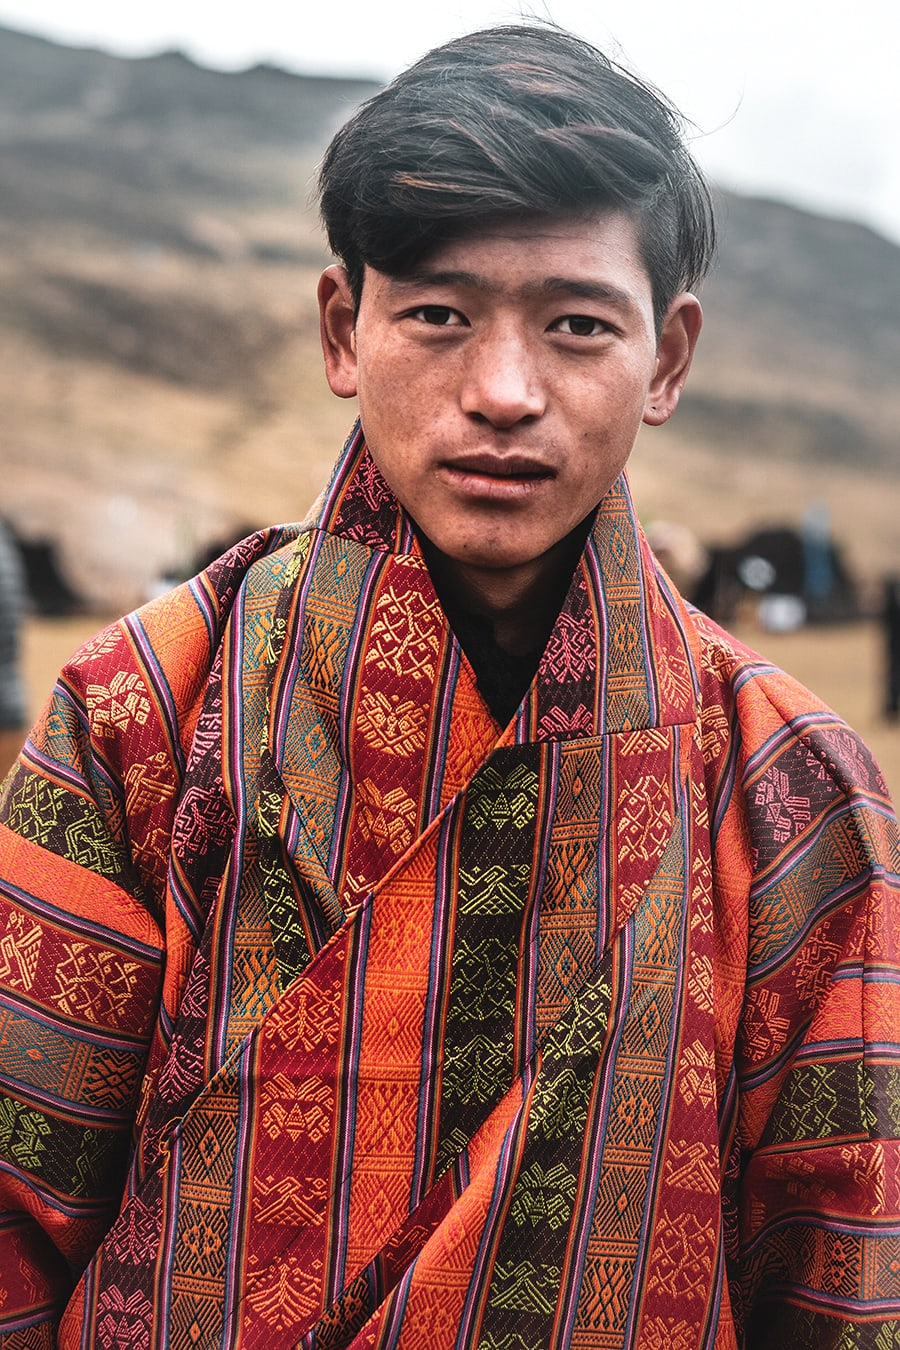 Layap boy dressed in traditional clothing for the Royal Highlander Festival in Laya, Bhutan.